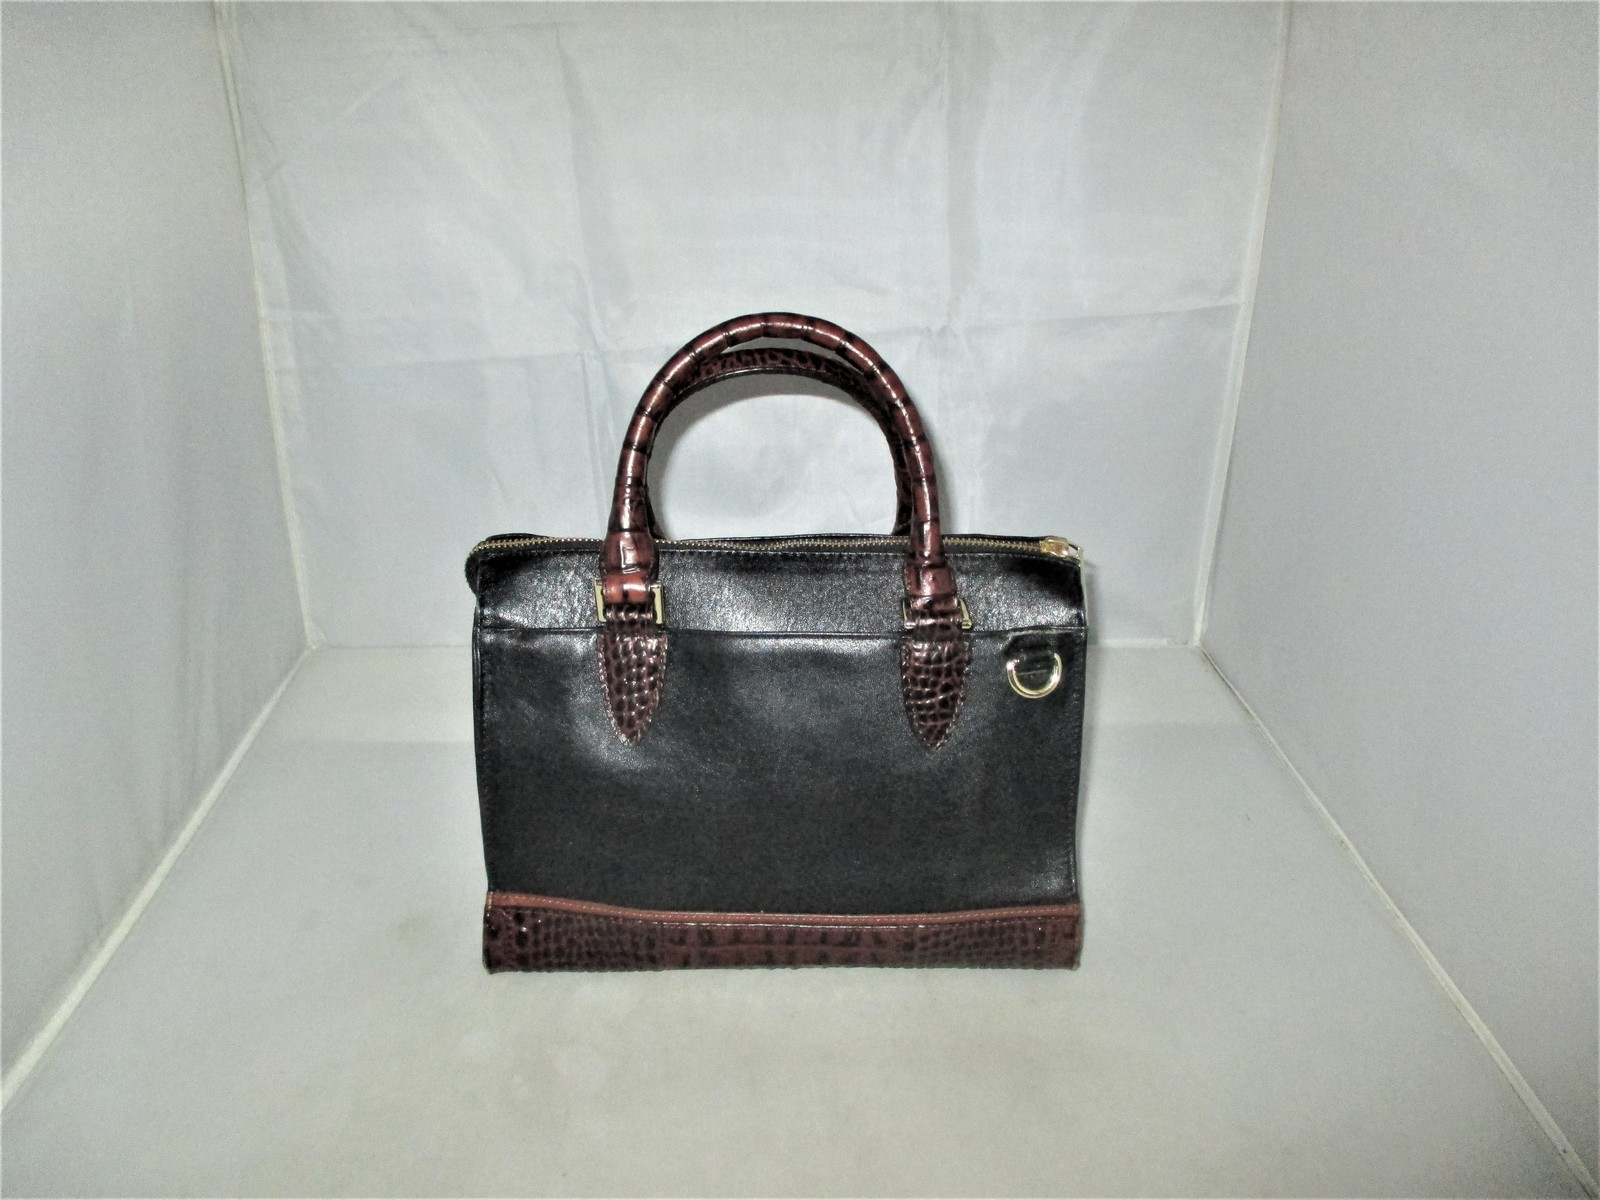 Brahmin Tuscan Tri-Texture Anywhere Convertible Satchel, Shoulder Bag,Tote $255 image 10